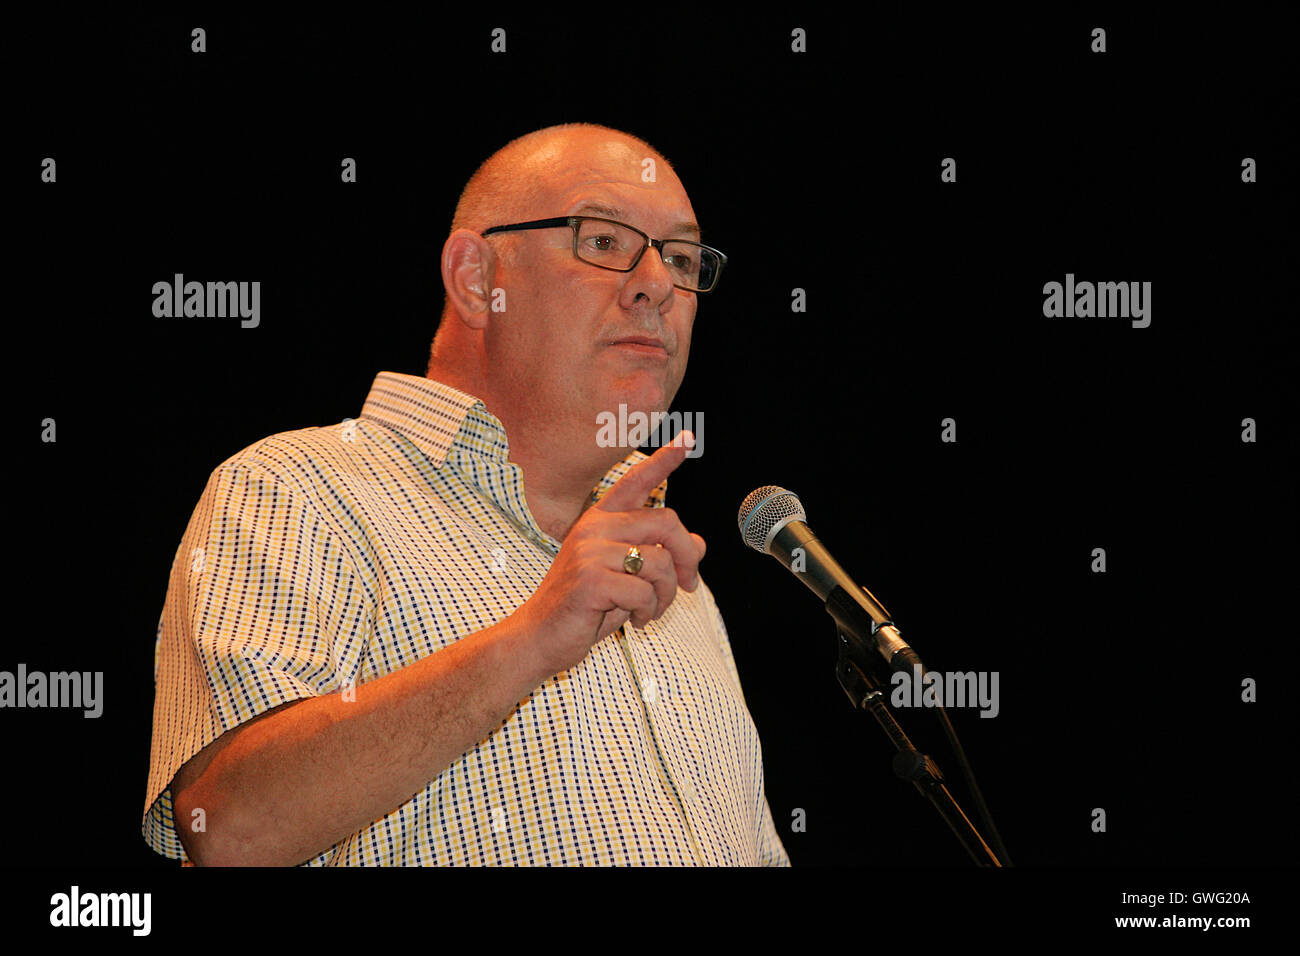 Brighton, UK. 13th September 2016. Dave Ward General Secretary of the Communications Workers Union gives a speech - Stock Image